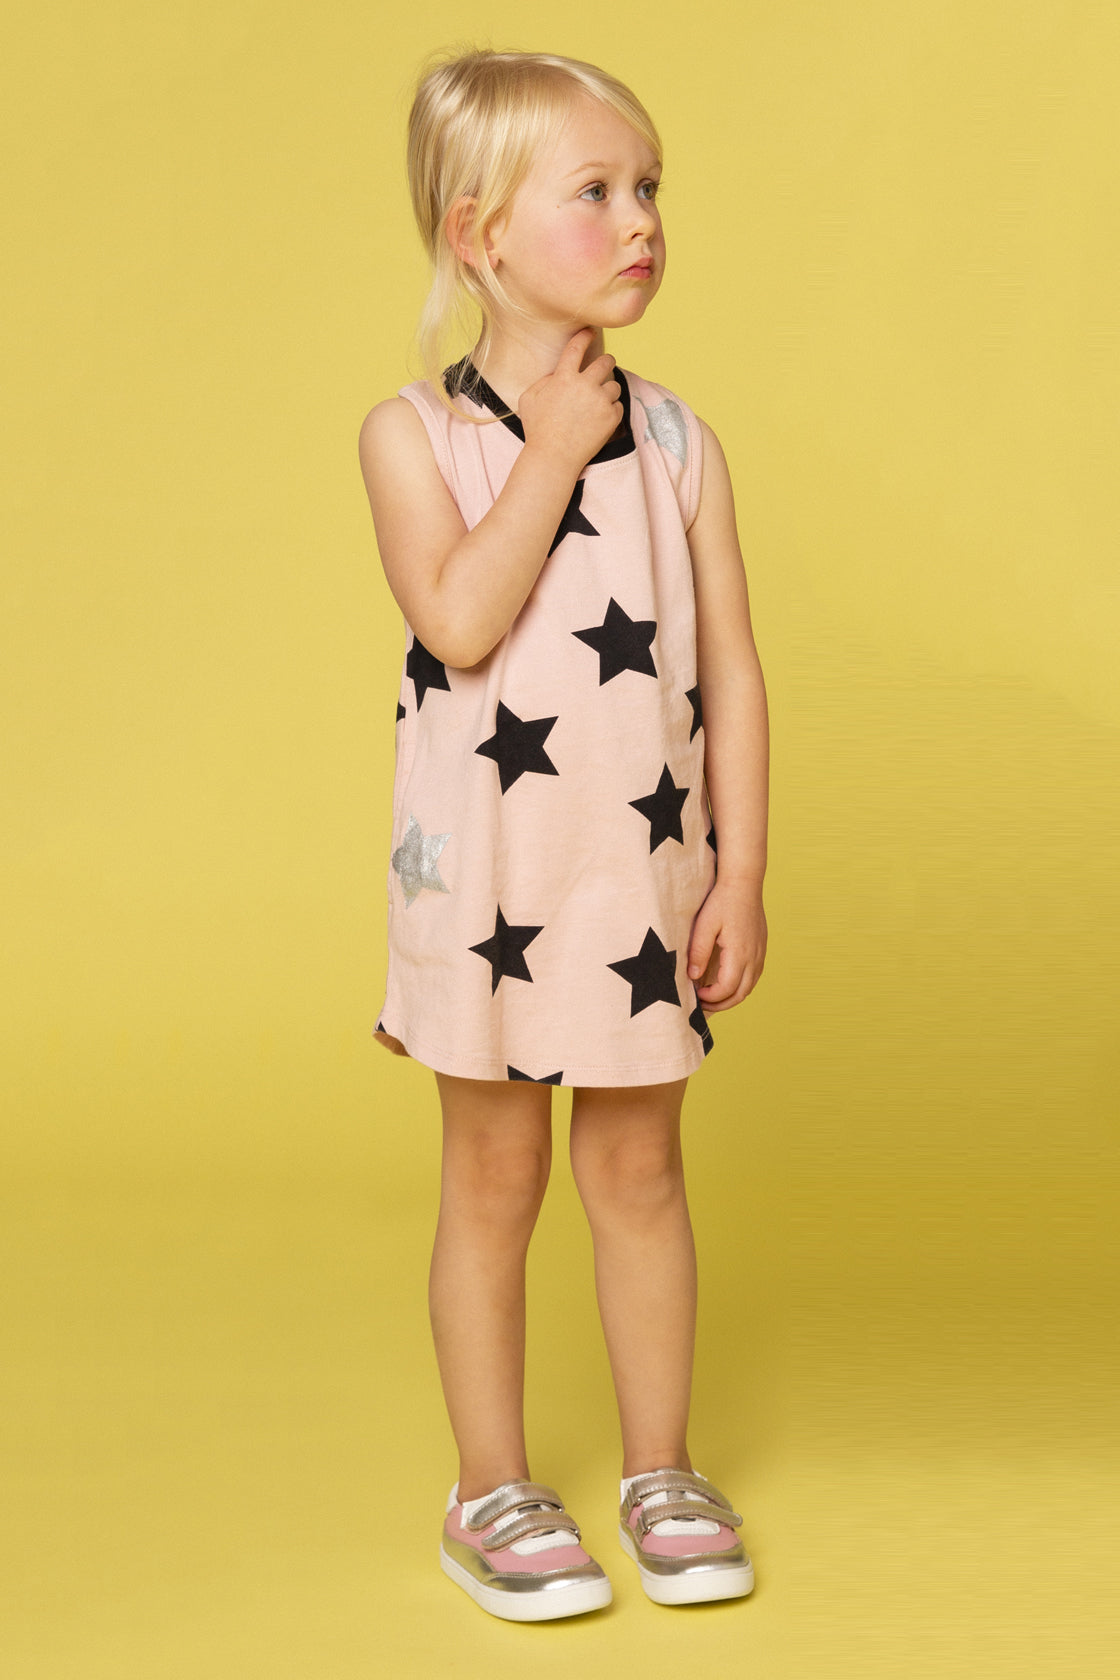 Old Soles Starstruck Girls Dress